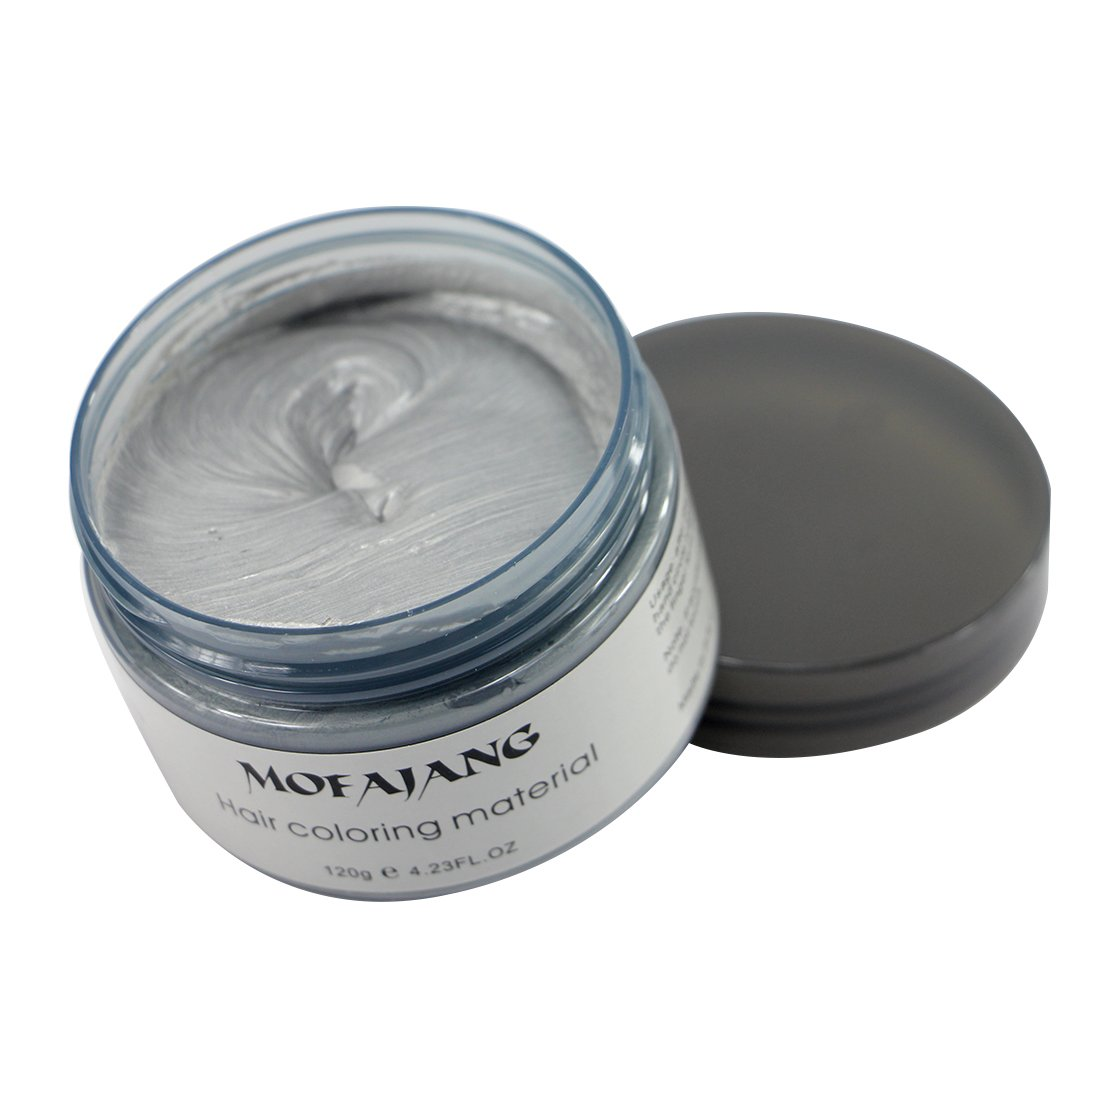 Mofajang Hair Wax Dye Styling Cream Mud, Natural Hairstyle Color Pomade, Washable Temporary, Gray by MOFAJANG (Image #4)